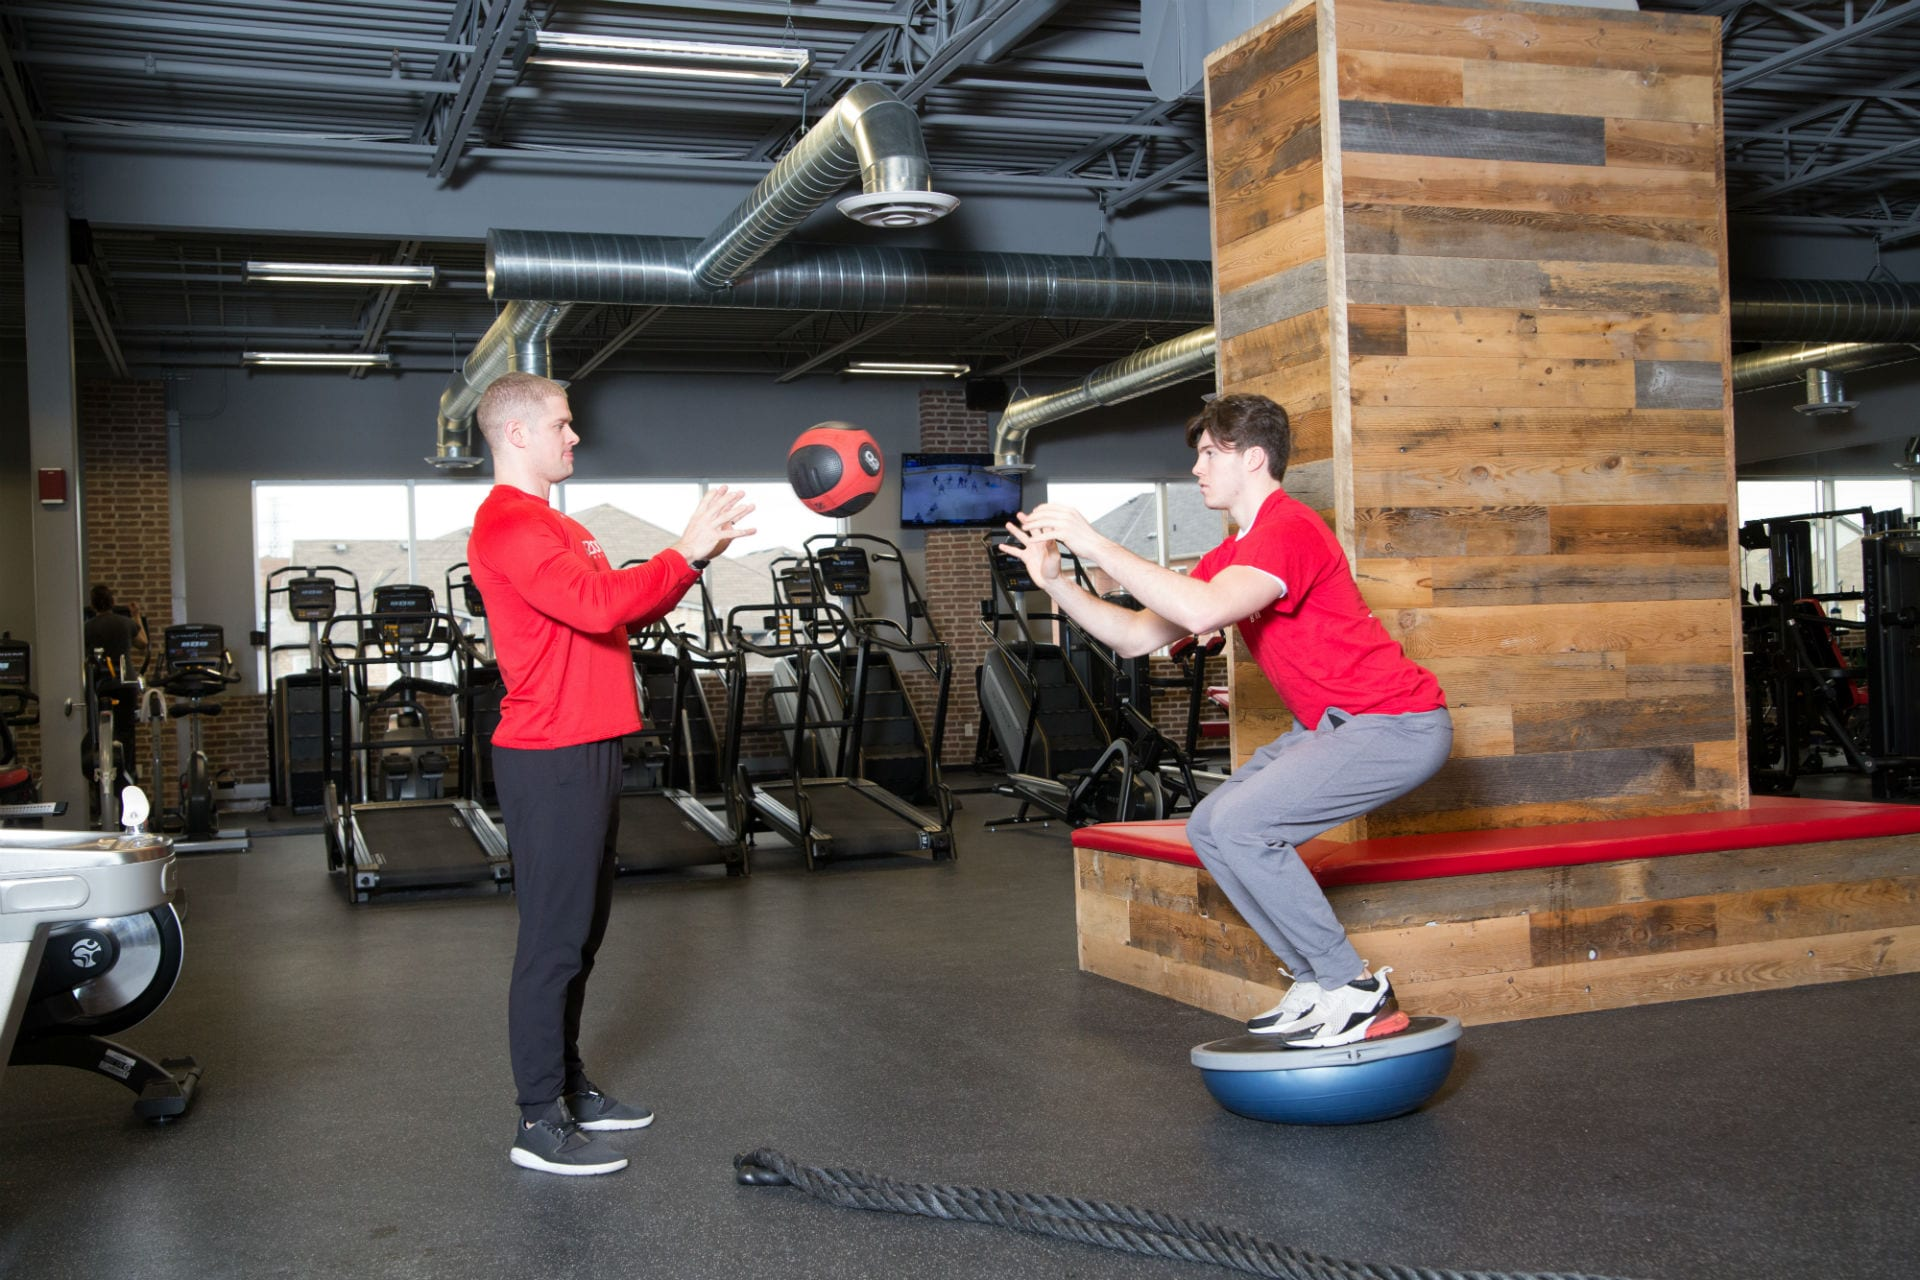 gym fitness equipment and personal training